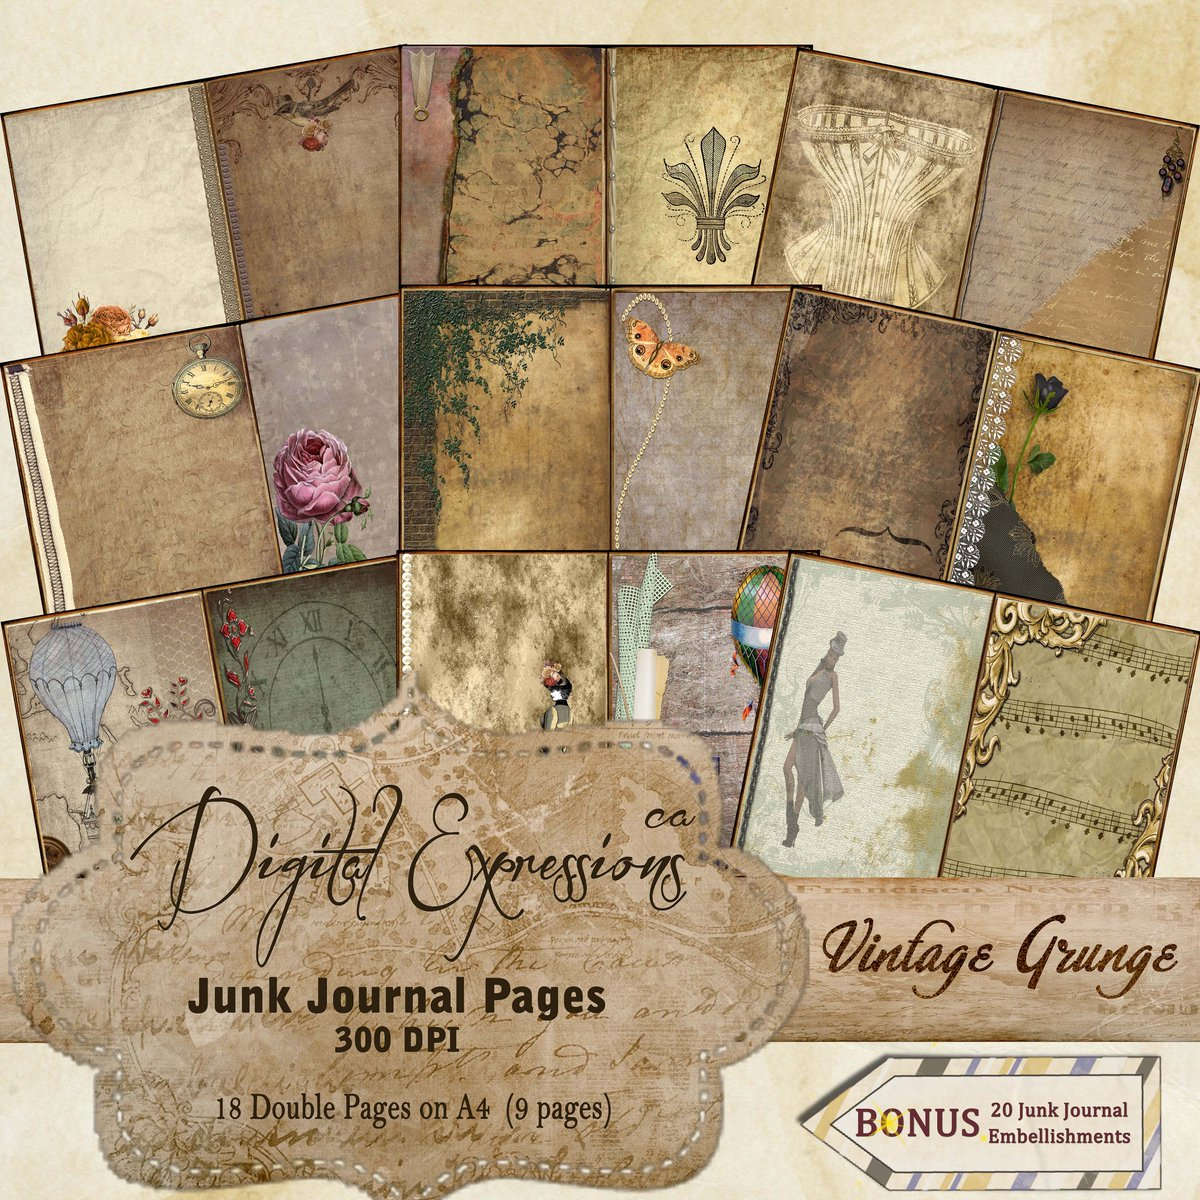 My #ETSY Shop http://ow.ly/APTt50vsZ9V  #JunkJournal #planner #ErinCondren #stickers #printable #scrapbooking #Digital #Paper packs #Bible #teacards #tags #Washitape #Steampunk -Trying to raise $25,000 for #Charity! Check for #Sale  50-60% off #Commercial Use TY for your supportpic.twitter.com/QyhJtDMeQH